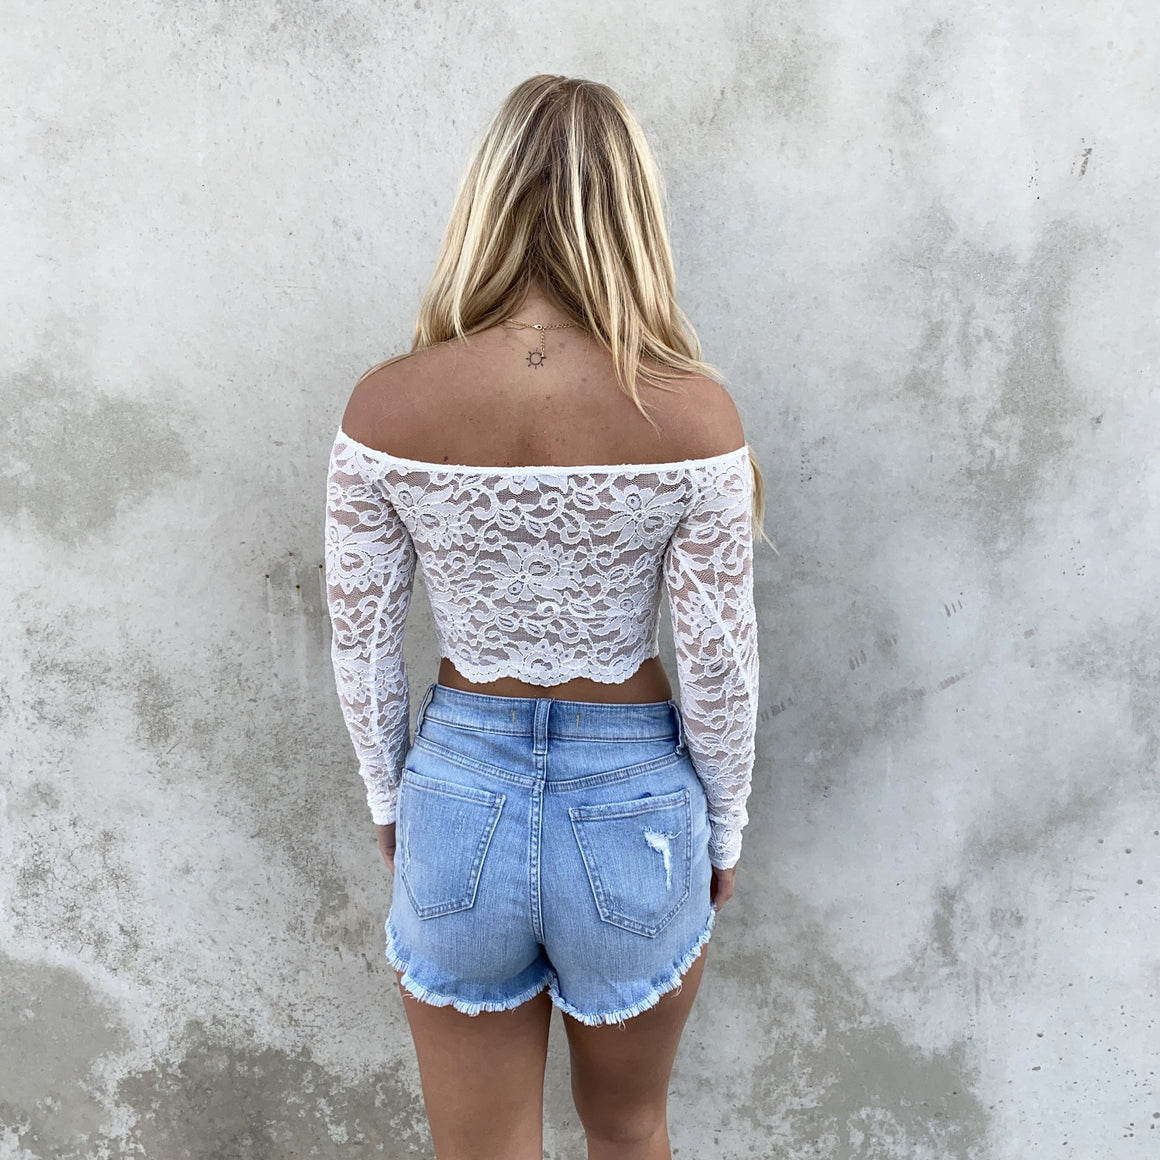 At My Own Lace White Floral Crop Top - Dainty Hooligan